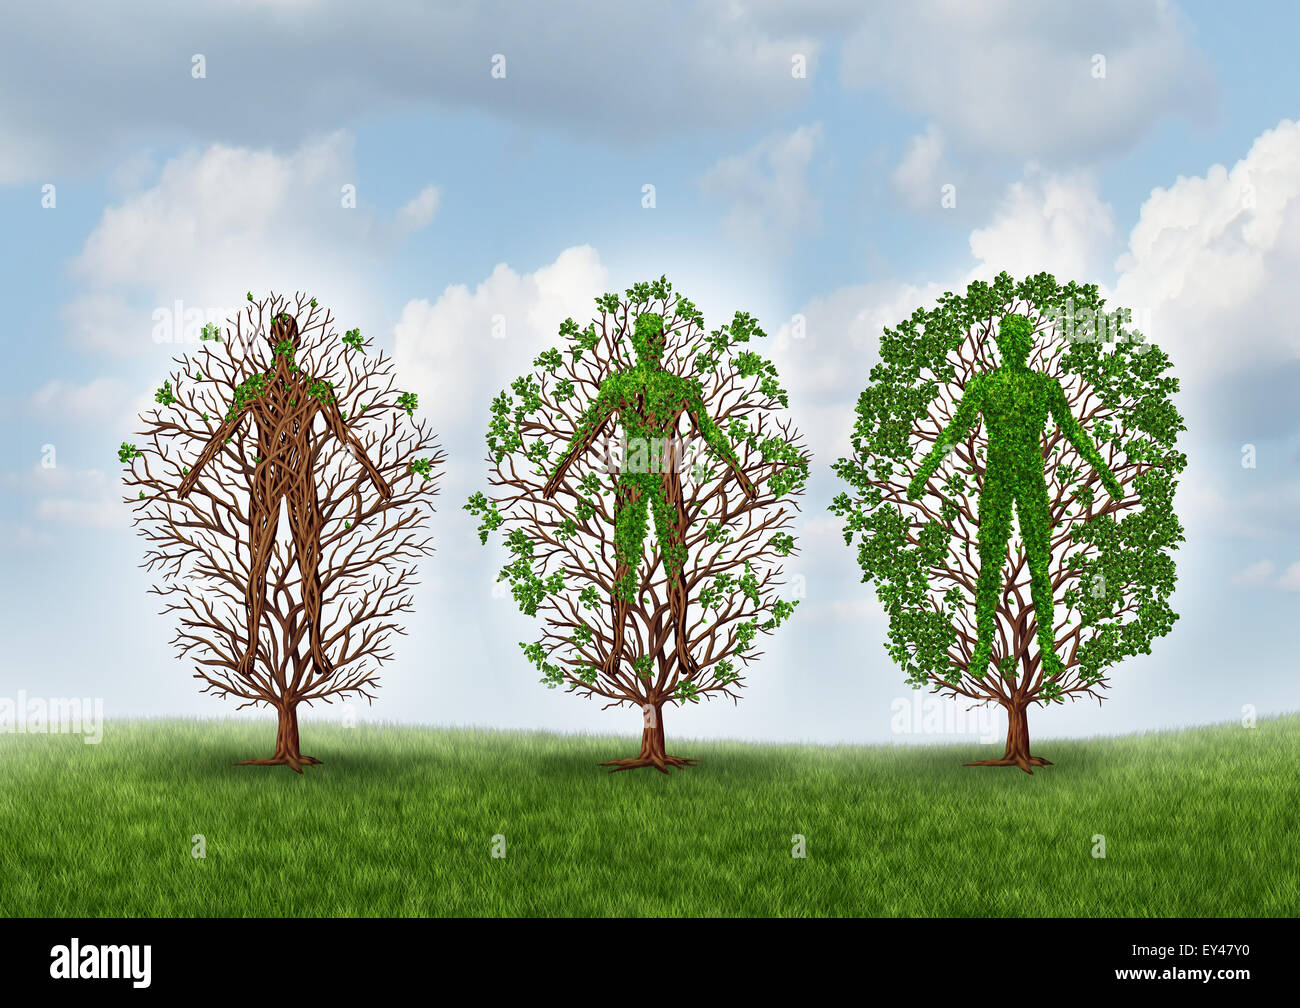 Cure and recovery concept and healing through rehabilitation therapy symbol as an empty tree gradually growing healthy - Stock Image